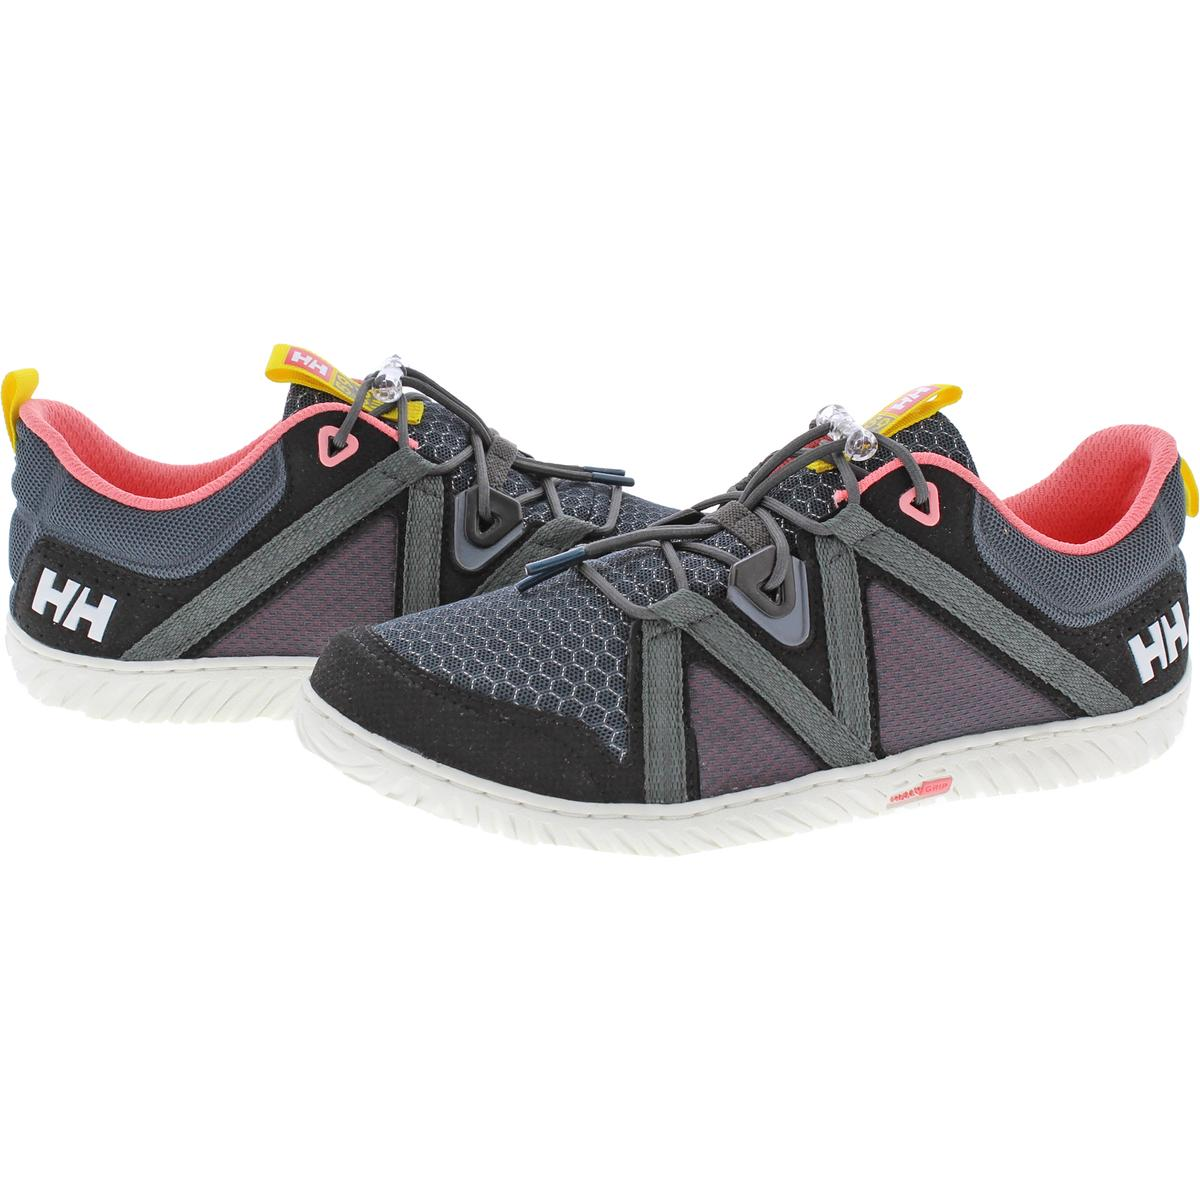 thumbnail 6 - Helly-Hansen-Womens-HP-Foil-F1-Fitness-Performance-Sneakers-Shoes-BHFO-0206